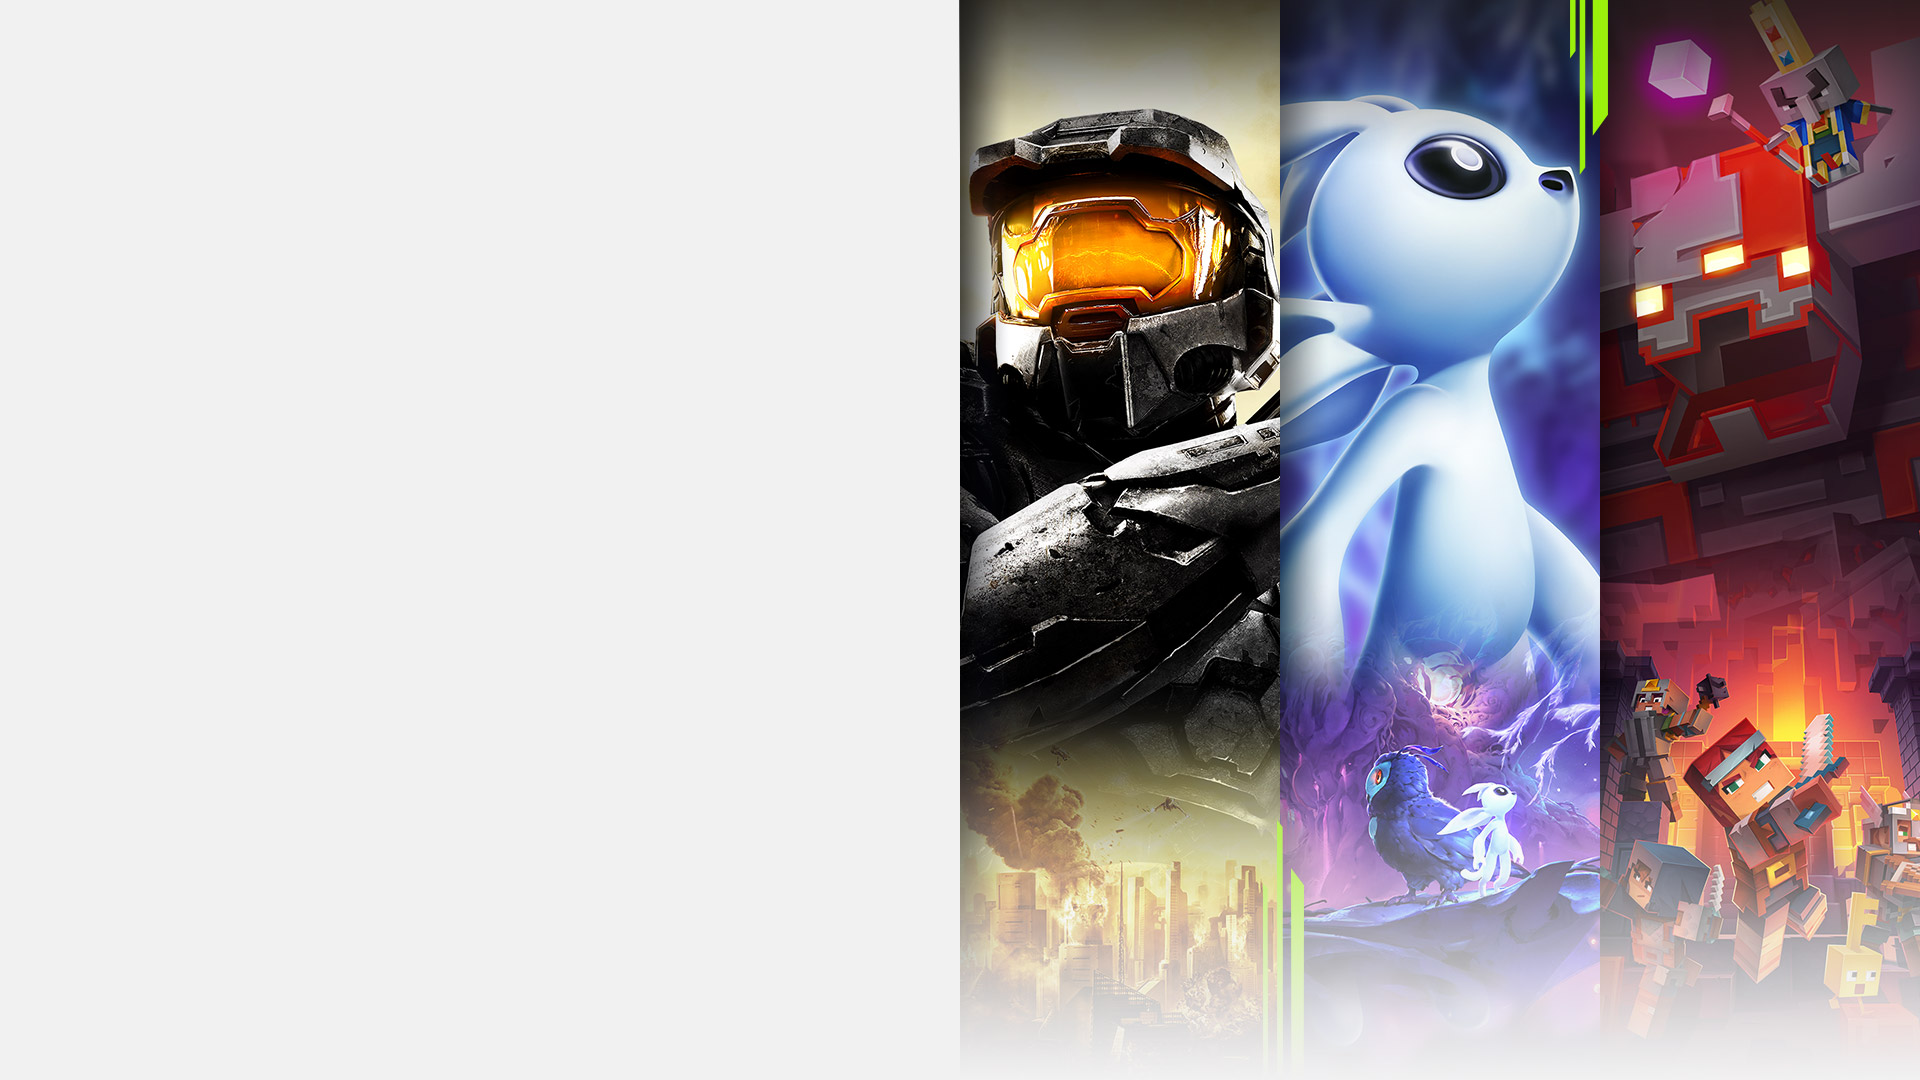 Game art from multiple games available with Xbox Game Pass for PC including Halo 2: Anniversary, Ori and the Will of the Wisps, Minecraft Dungeons, and Streets of Rage 4.